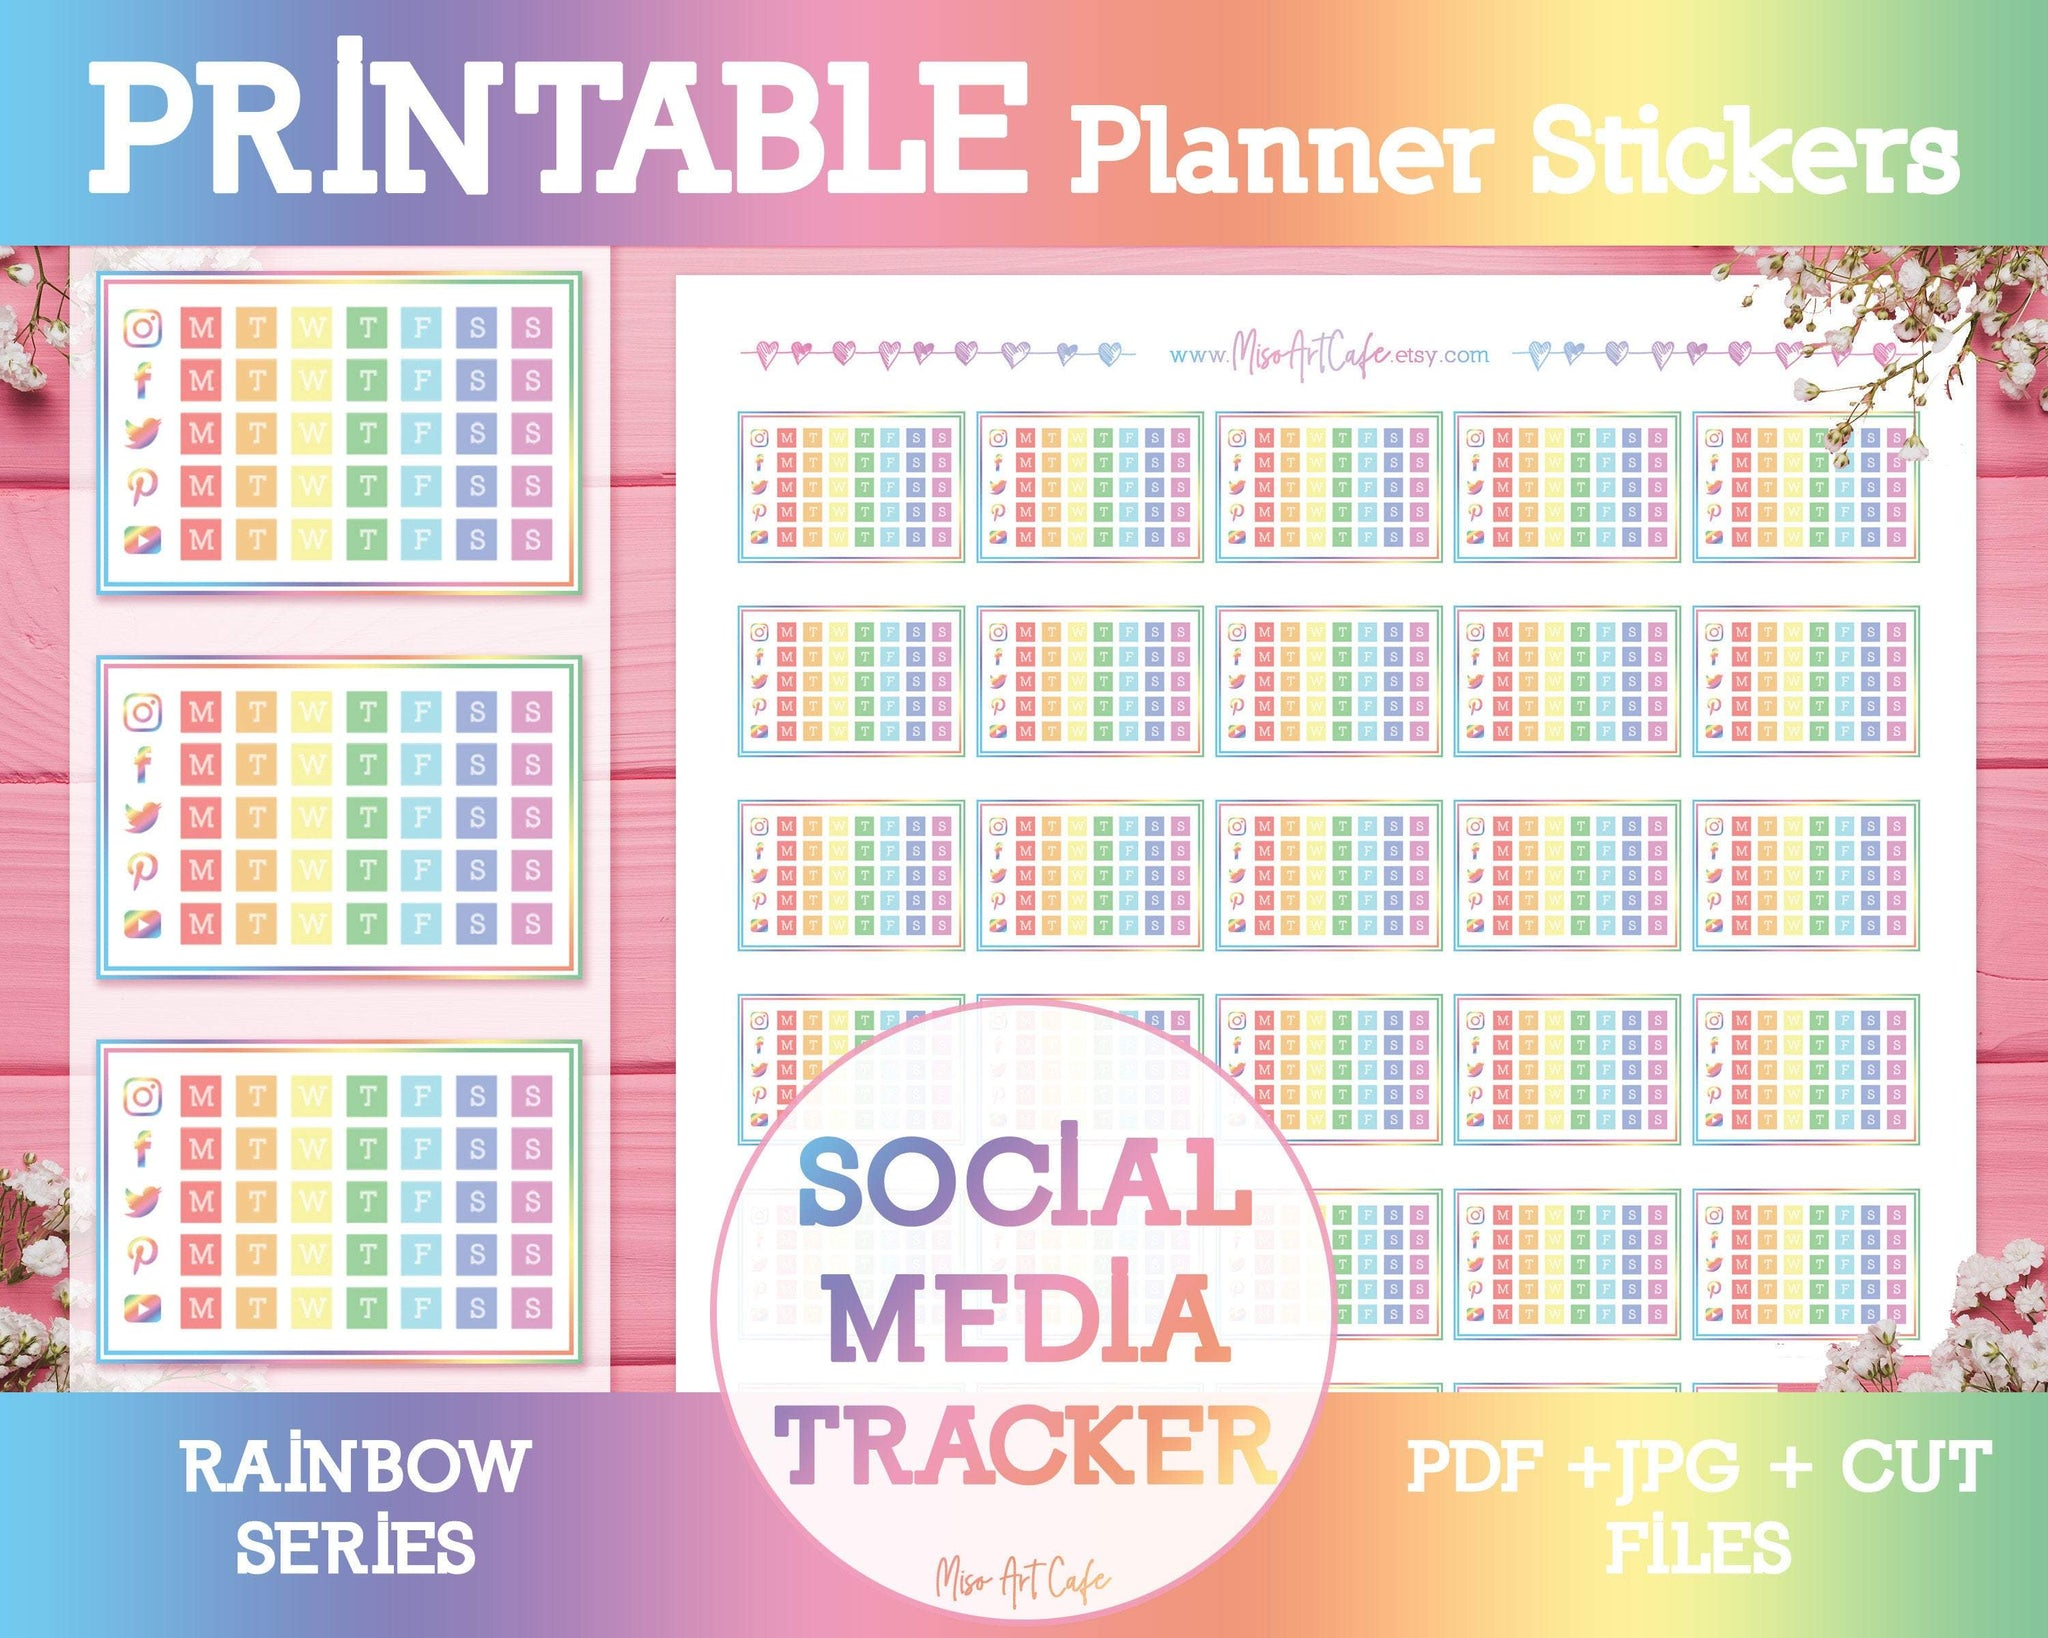 Printable Social Media Tracker - Rainbow Planner Stickers - Miso Art Cafe